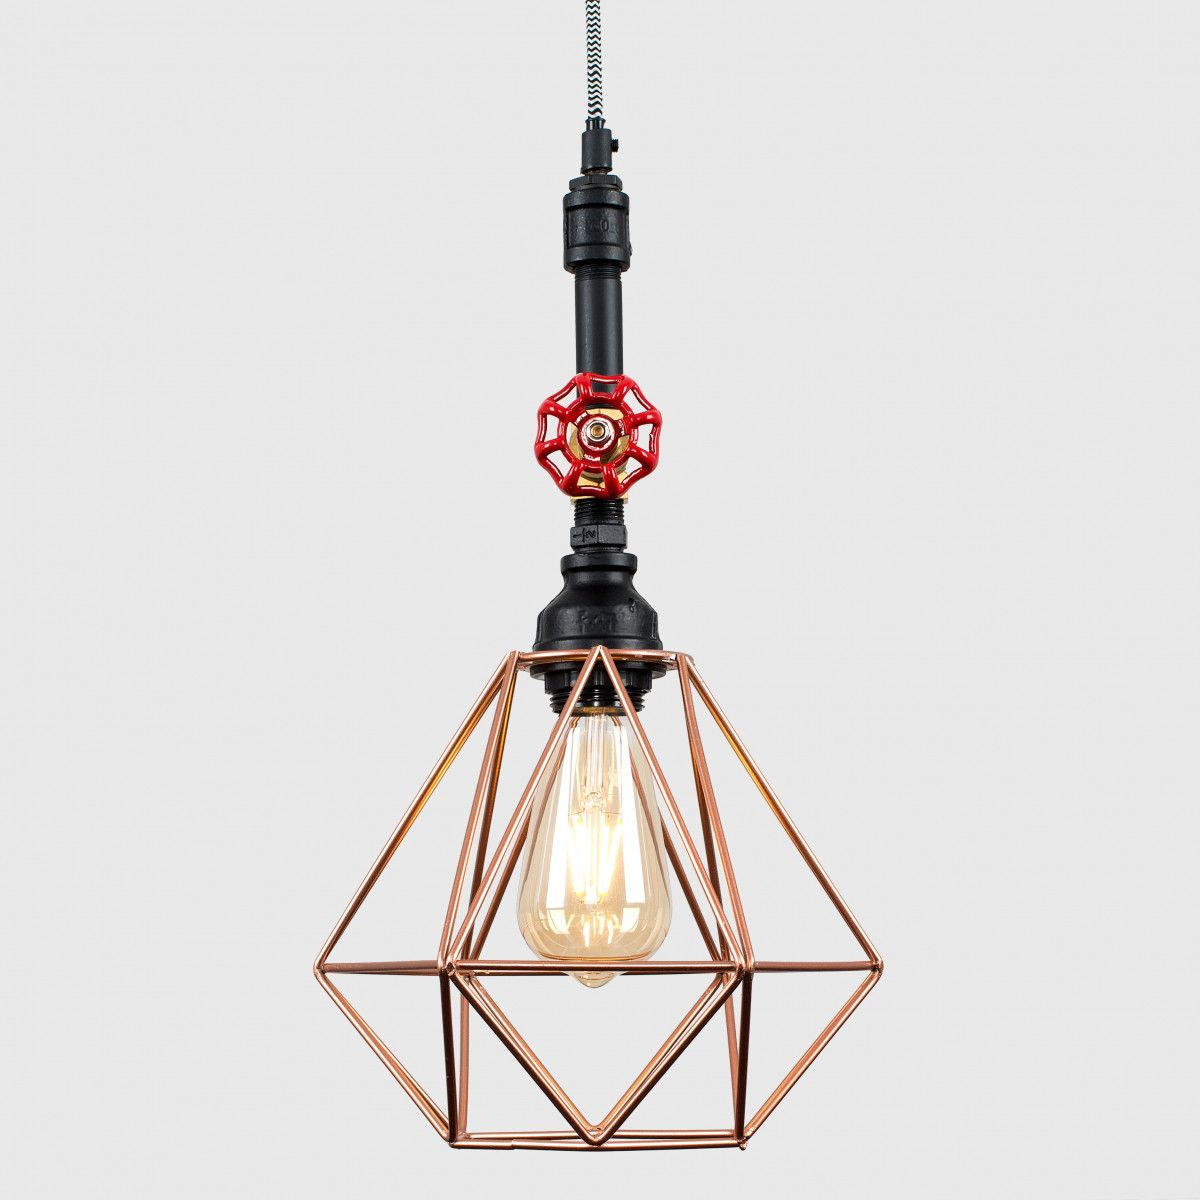 iconic lighting. Mario Black Steampunk Pipe Pendant Light With Copper Geometric Shade Iconic Lighting G